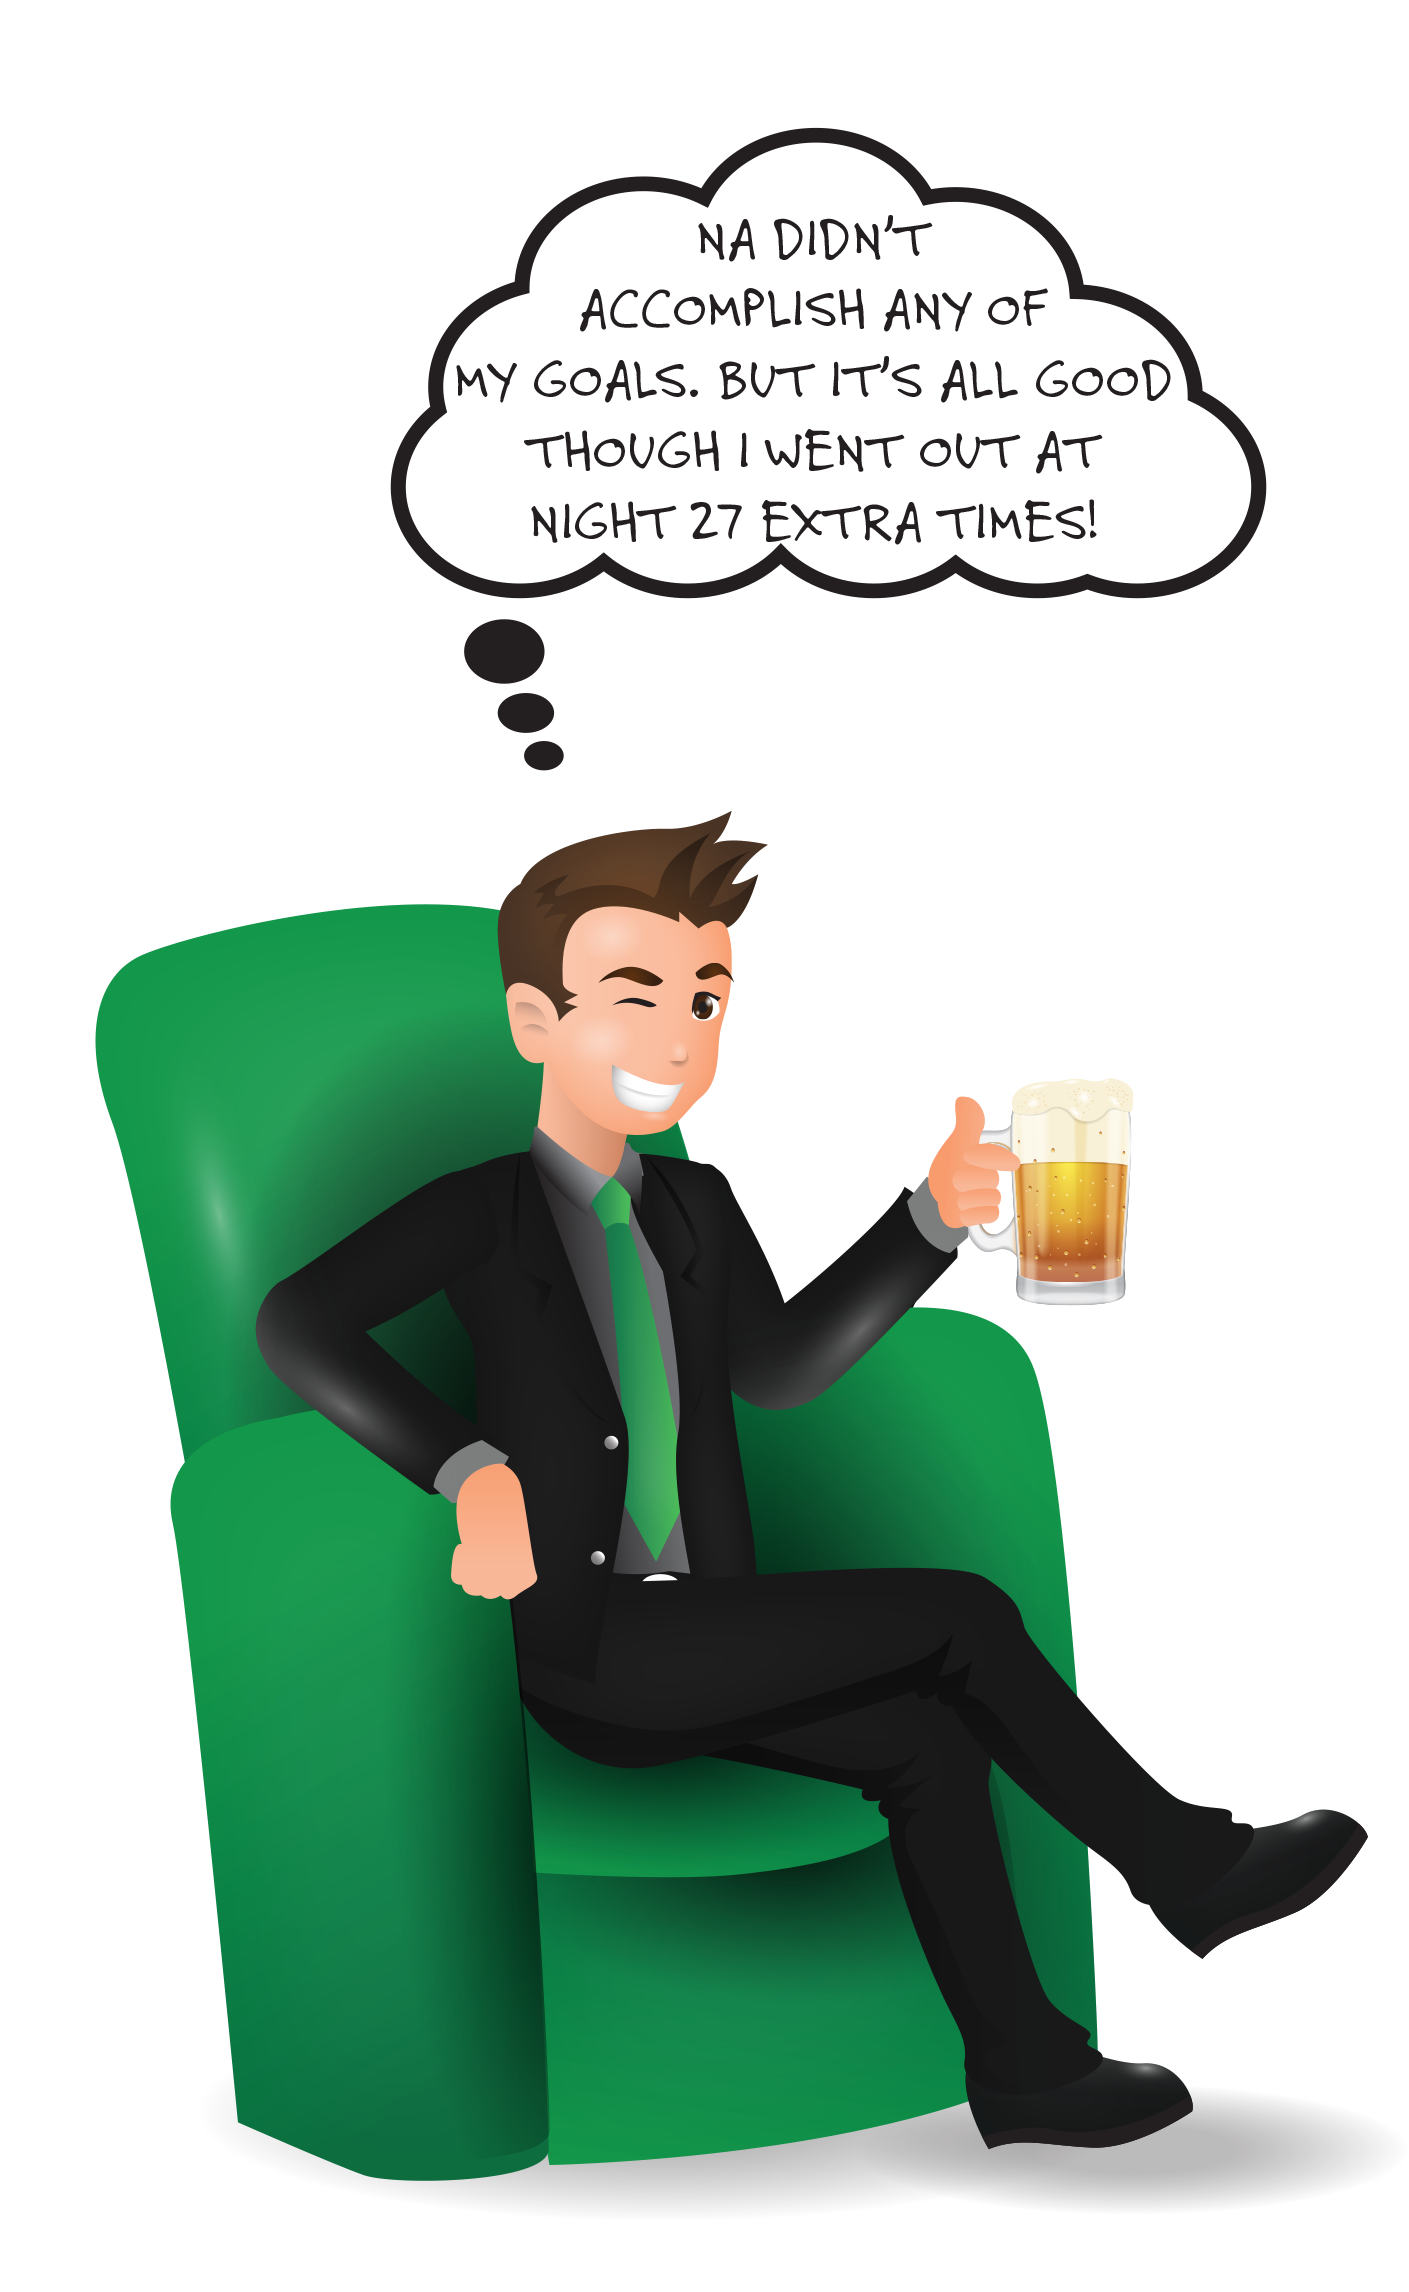 A banker giving an unemployed person money clipart jpg royalty free download How To Set Goals If You're Not Sure What You Want - Forever Jobless jpg royalty free download